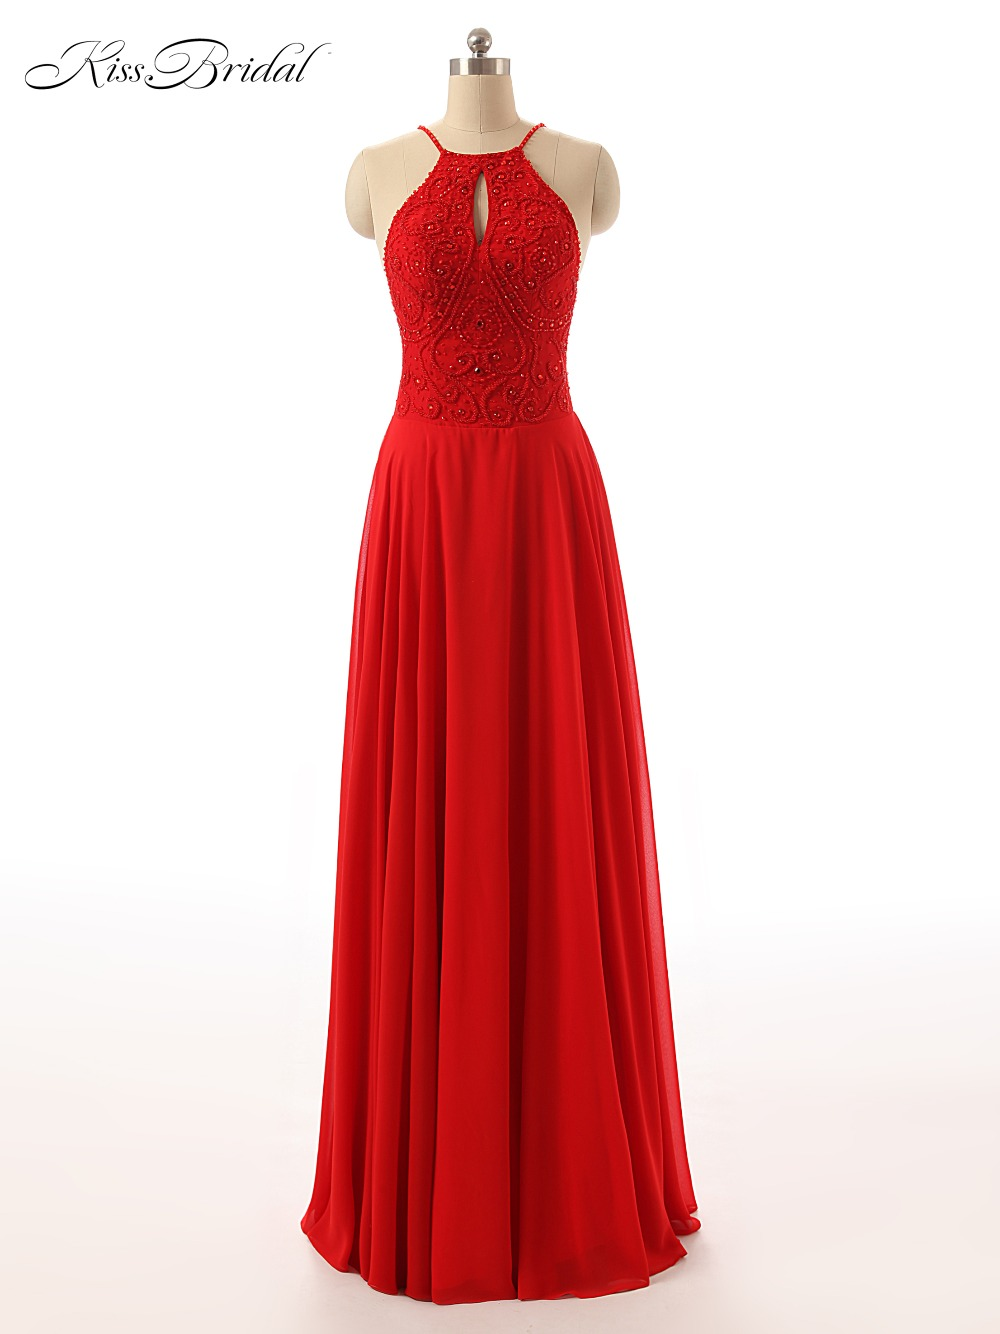 Sexy Red Mermaid Prom Dress 2017 Long Halter Beaded Slim Backless vestidos de fiesta Formal Evening Gown Party Pageant Dresses